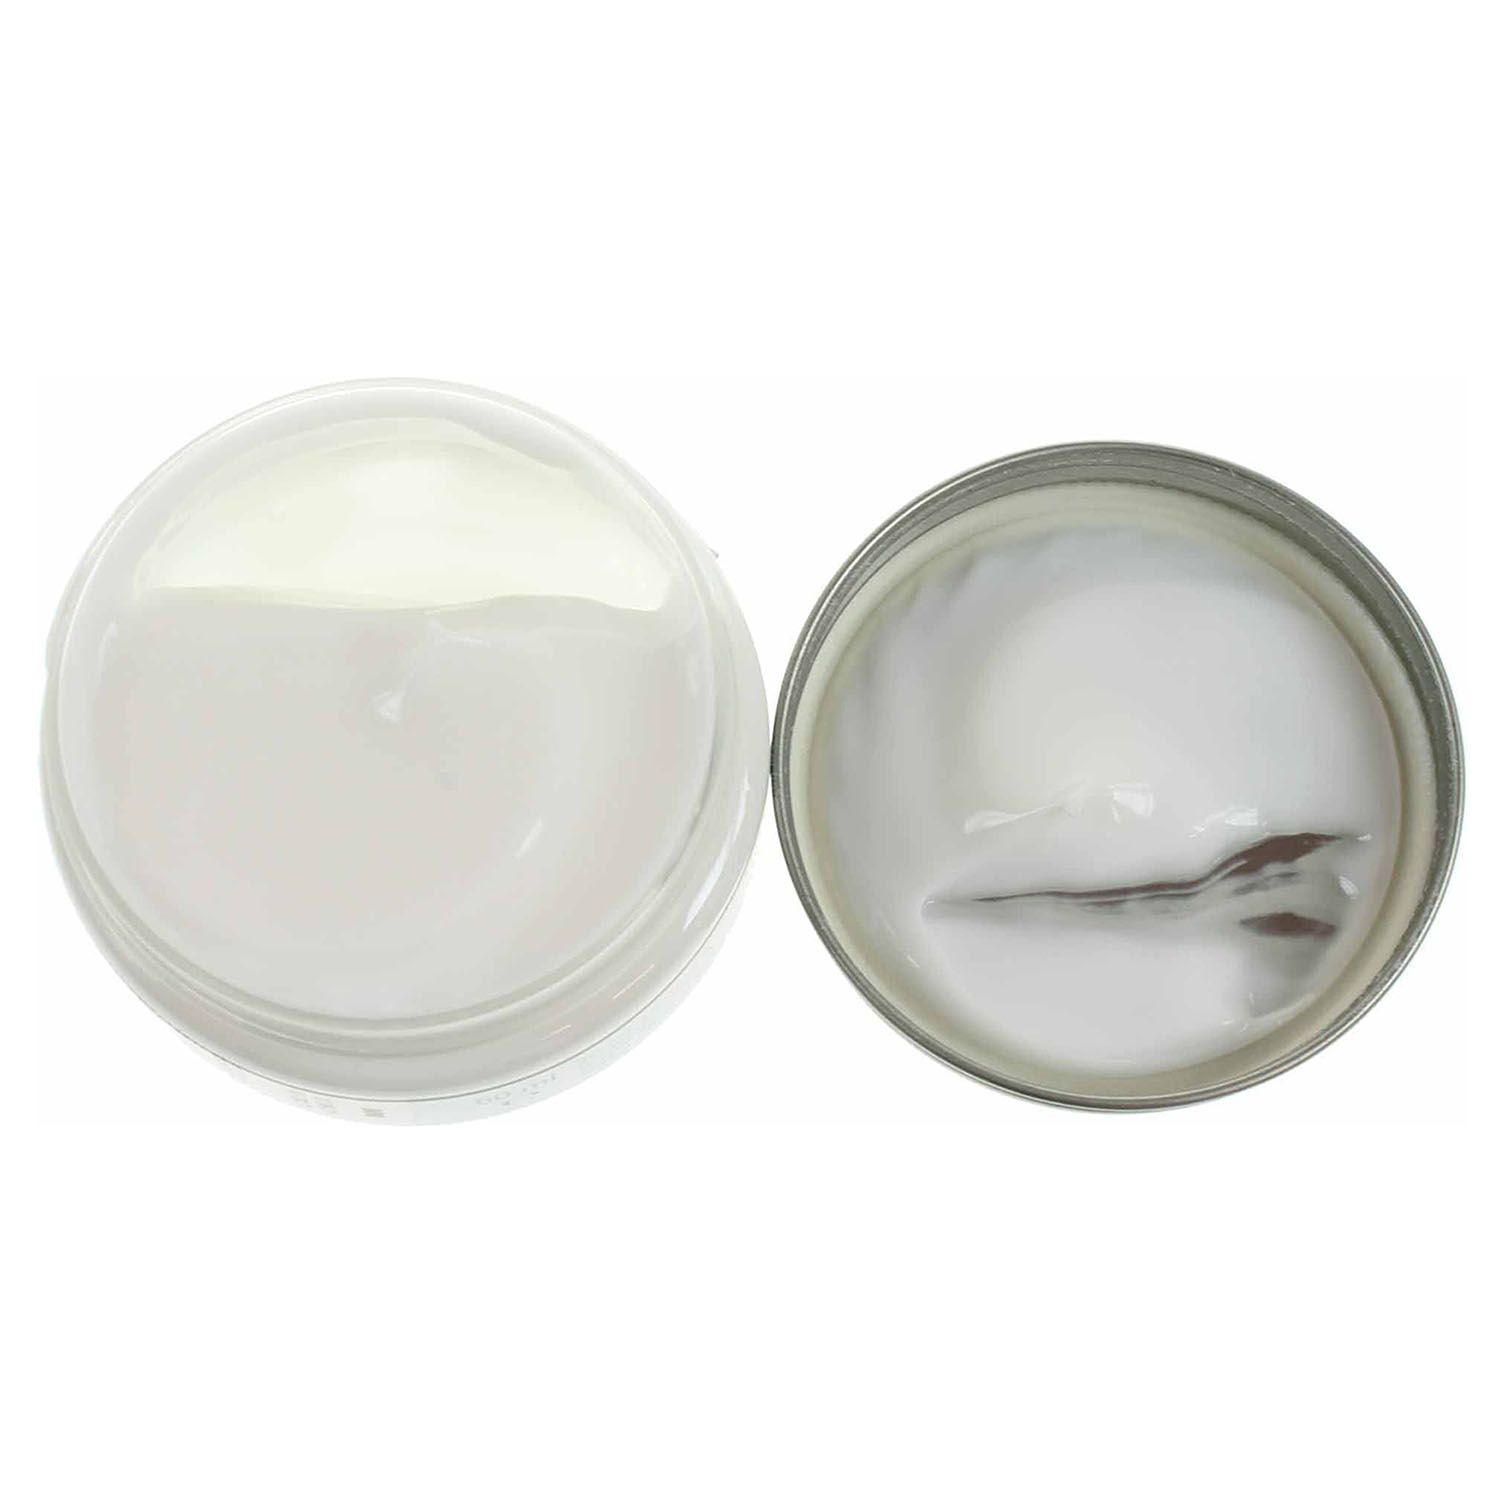 detail Collonil Reinigungs - Creme